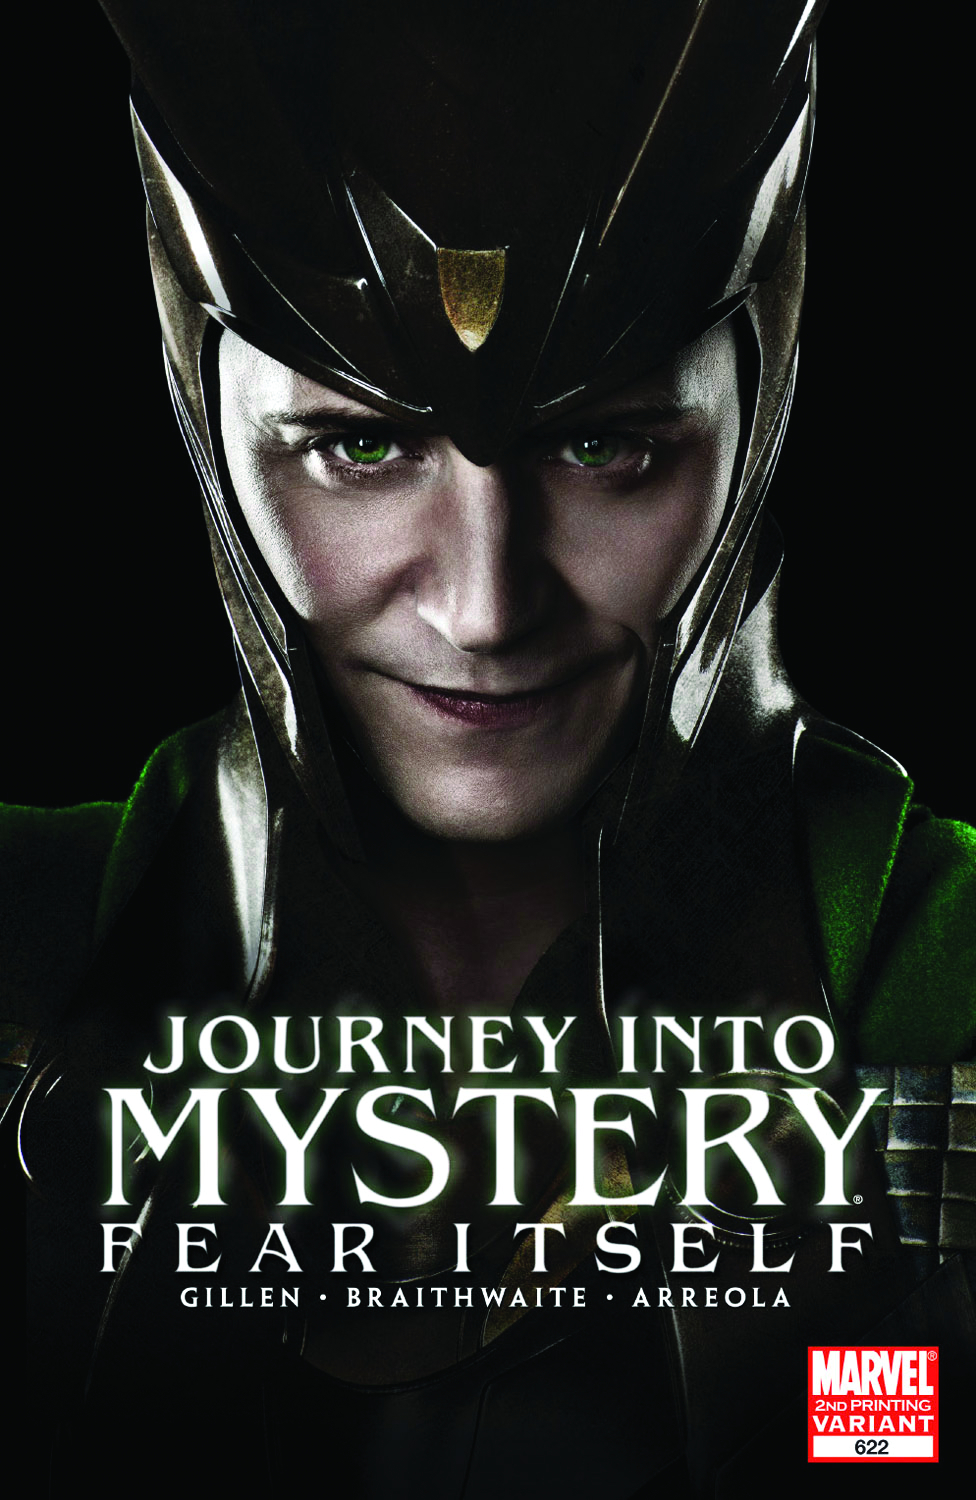 JOURNEY INTO MYSTERY #622 2ND PTG VAR FEAR (PP #972)